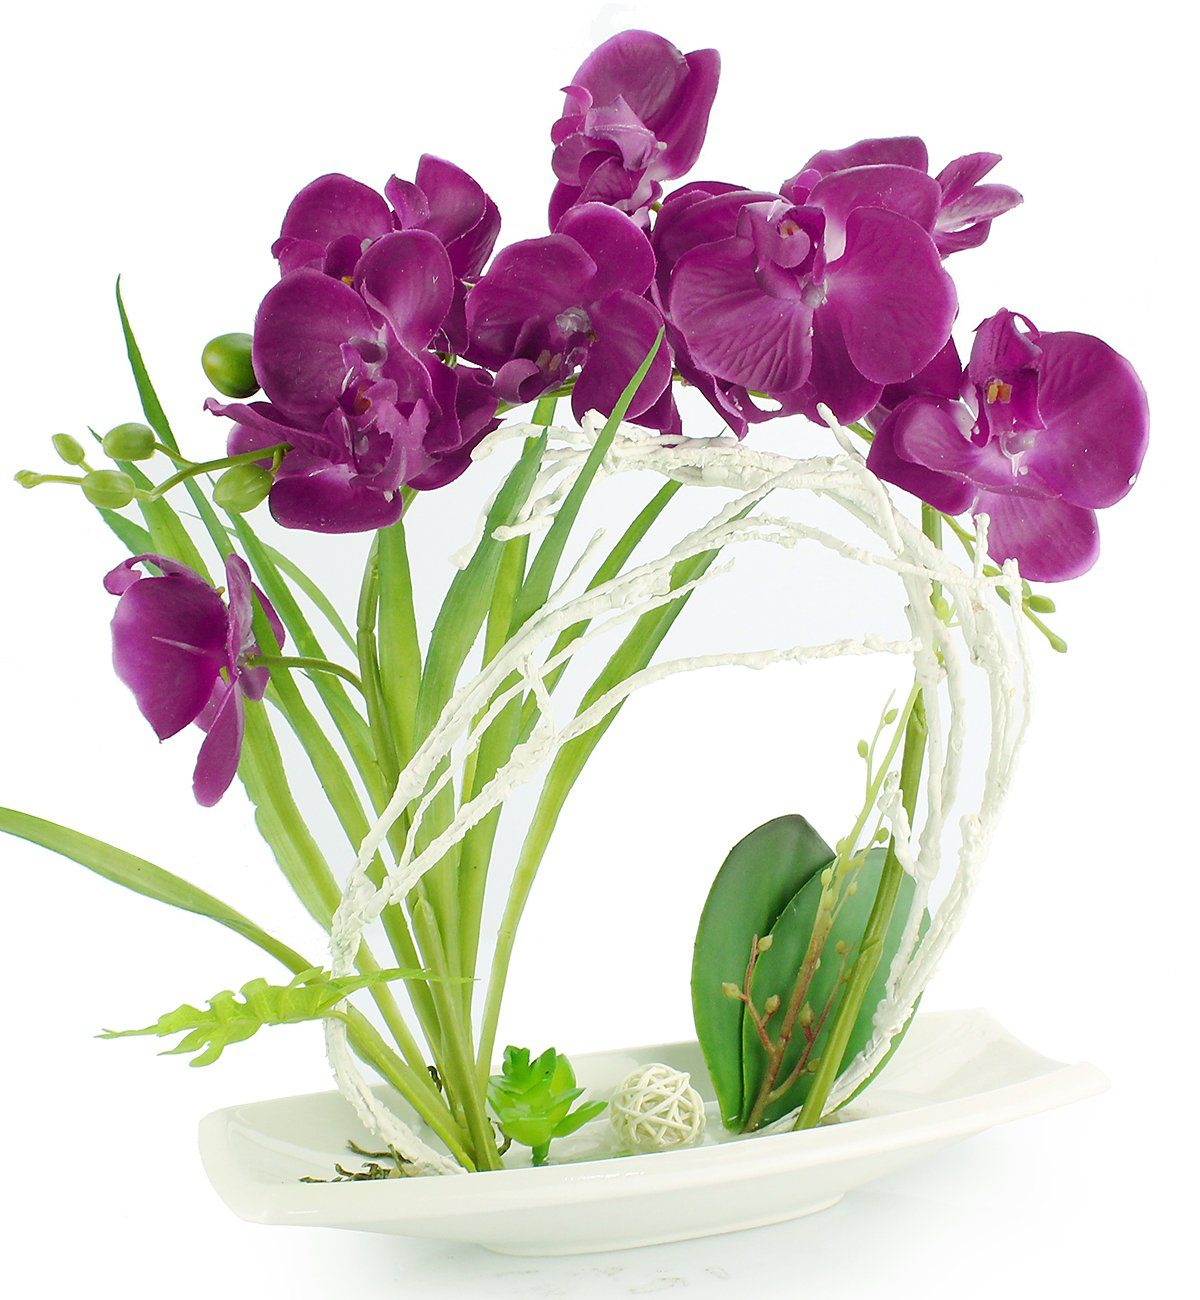 Buy Potted Silk Orchid Artificial Flower Arrangements With White Vase Fake Bonsai Centerpiece Table Decoration With Fake Water And Stone In Vase Purple Online At Low Prices In India Amazon In